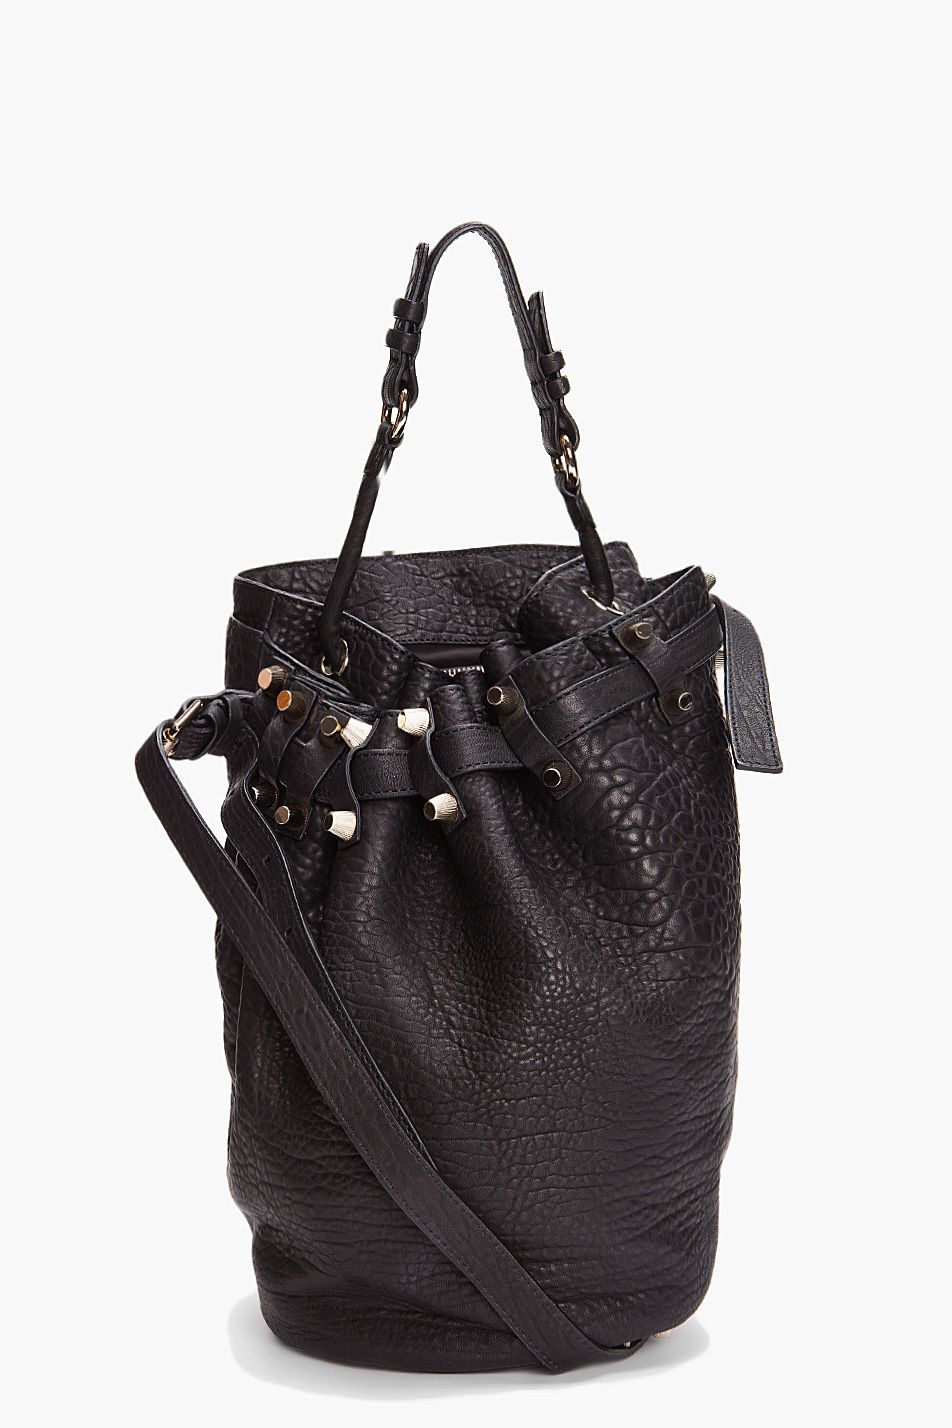 Alexander Wang Rocco Bag Item ID: C Categories: Consignment, Womens, Bags & Wallets Tags: Alexander Wang, alexander wang bag, consignment bag, desginer handbag, designer bag Feel like a rockstar with this studded bag by Alexander Wang.